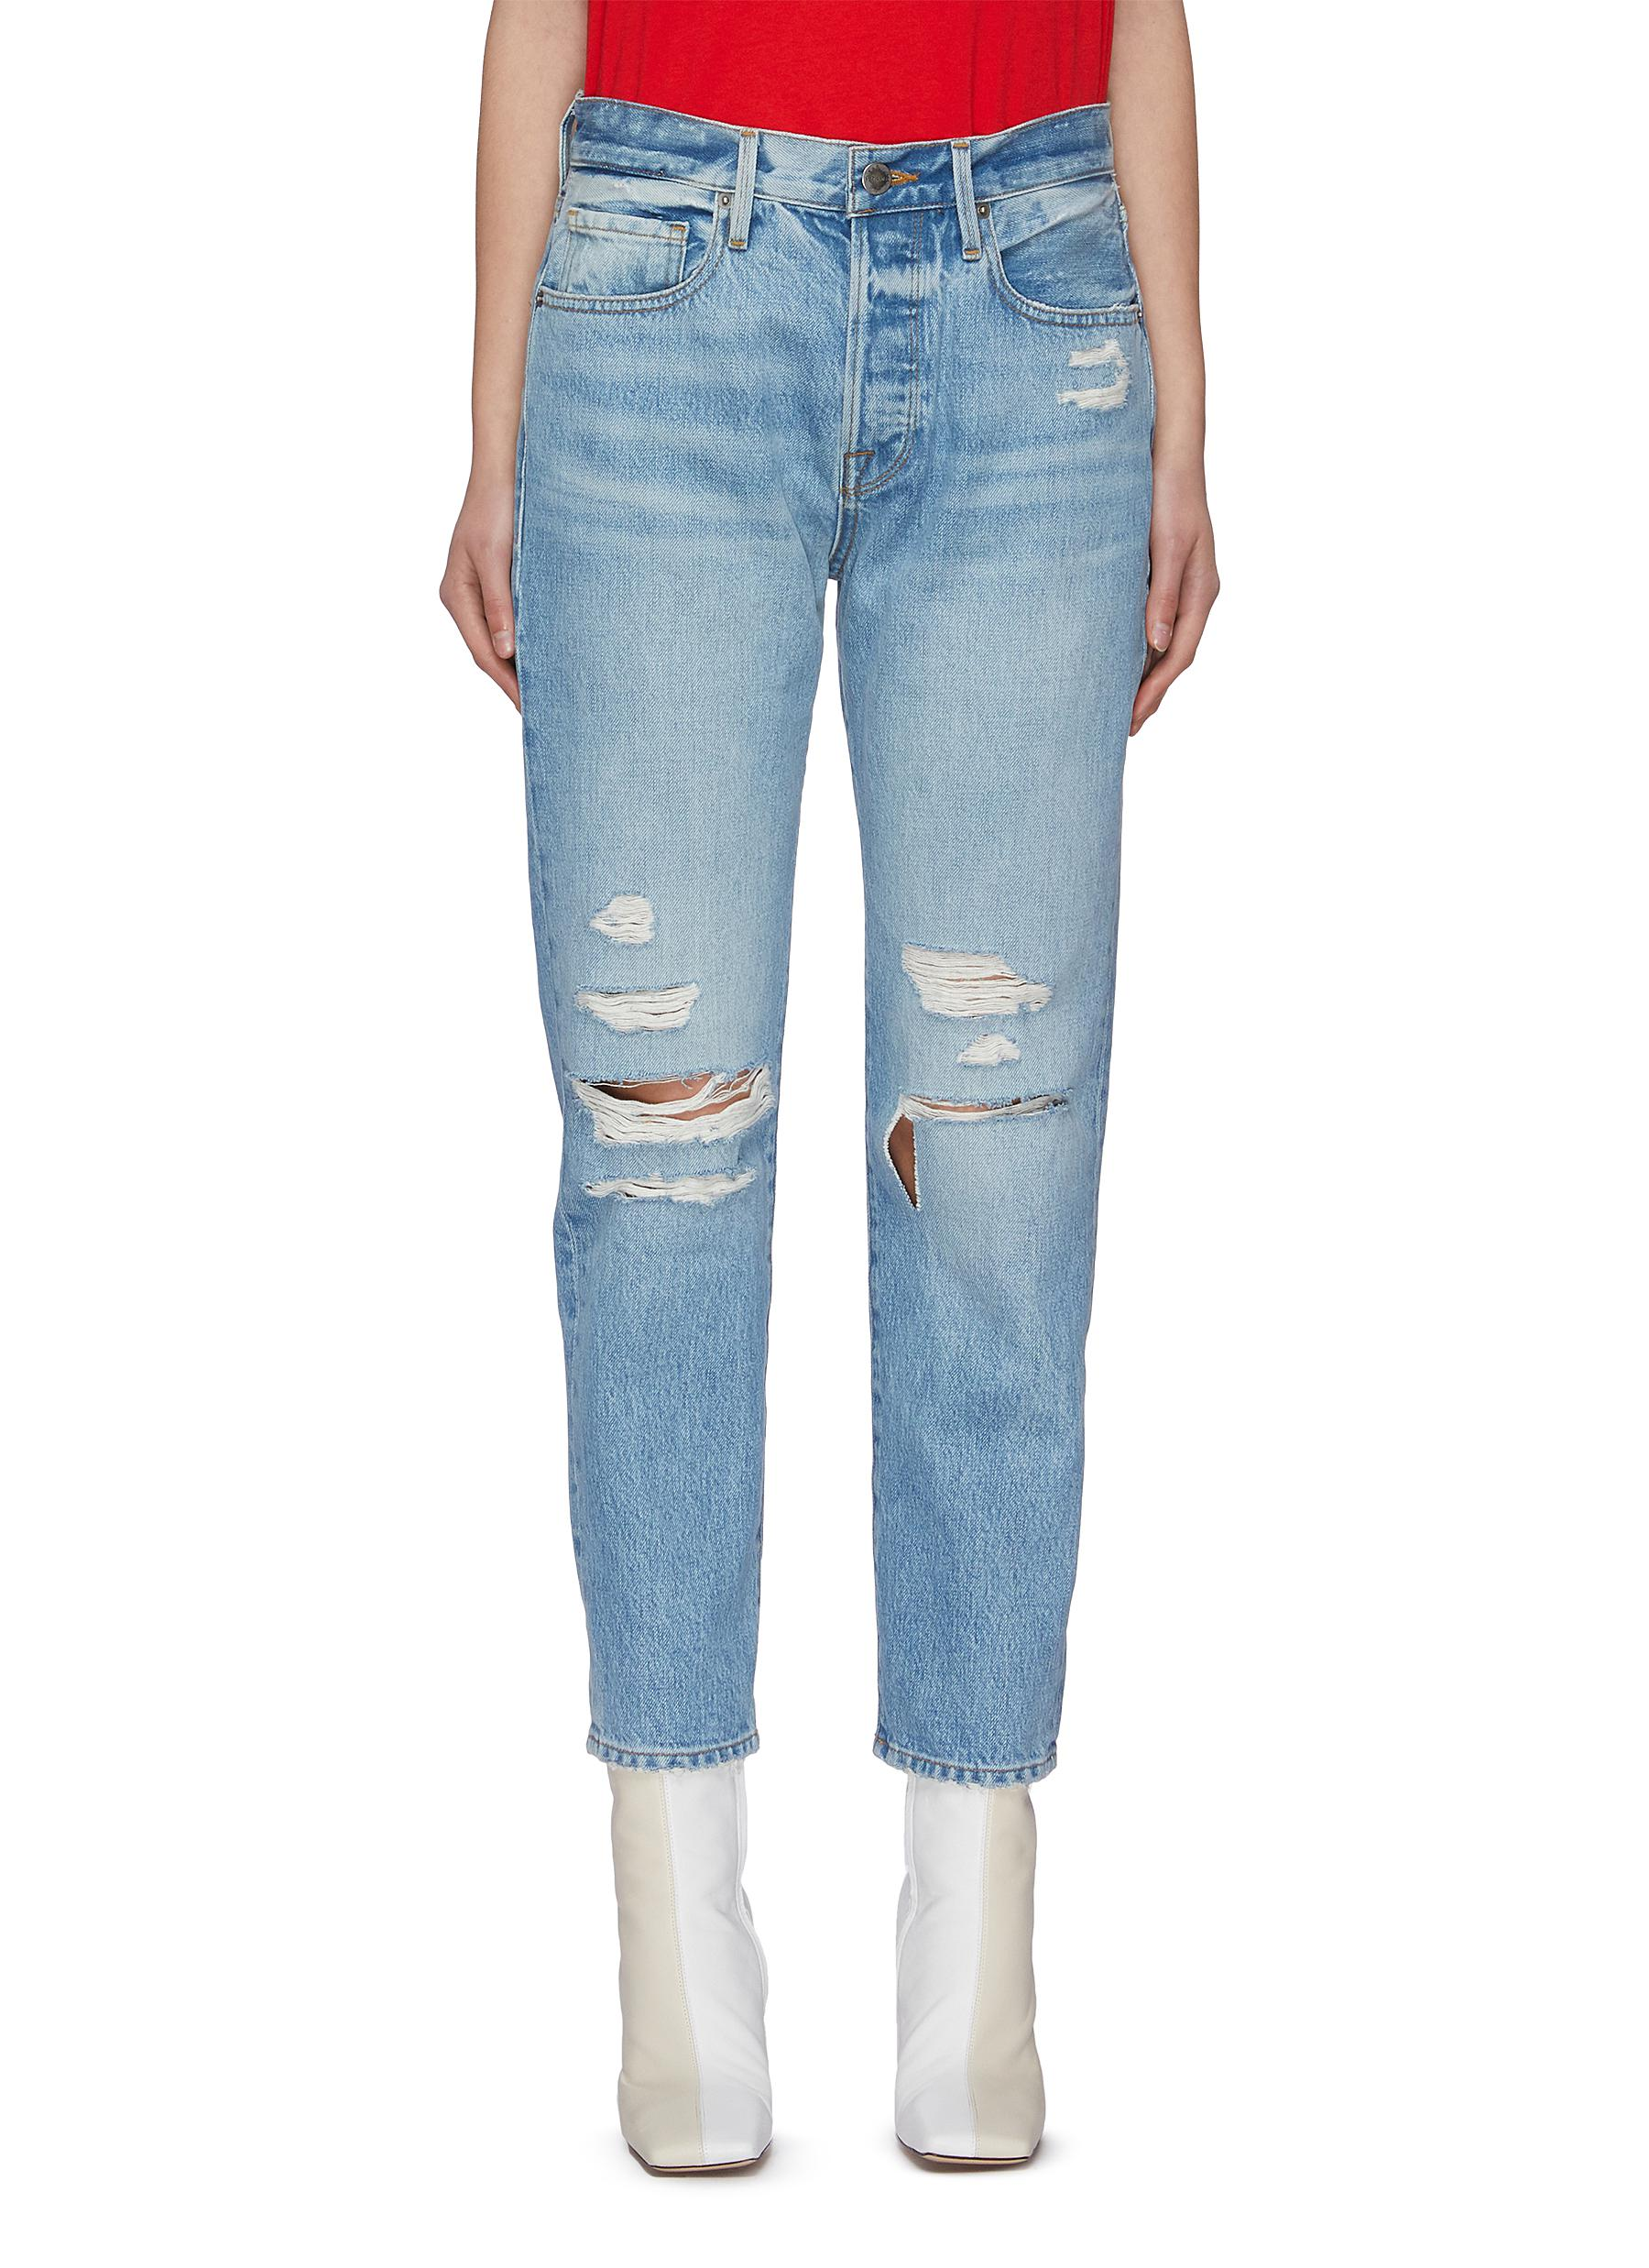 Buy Frame Denim Jeans 'Le Original' ripped jeans